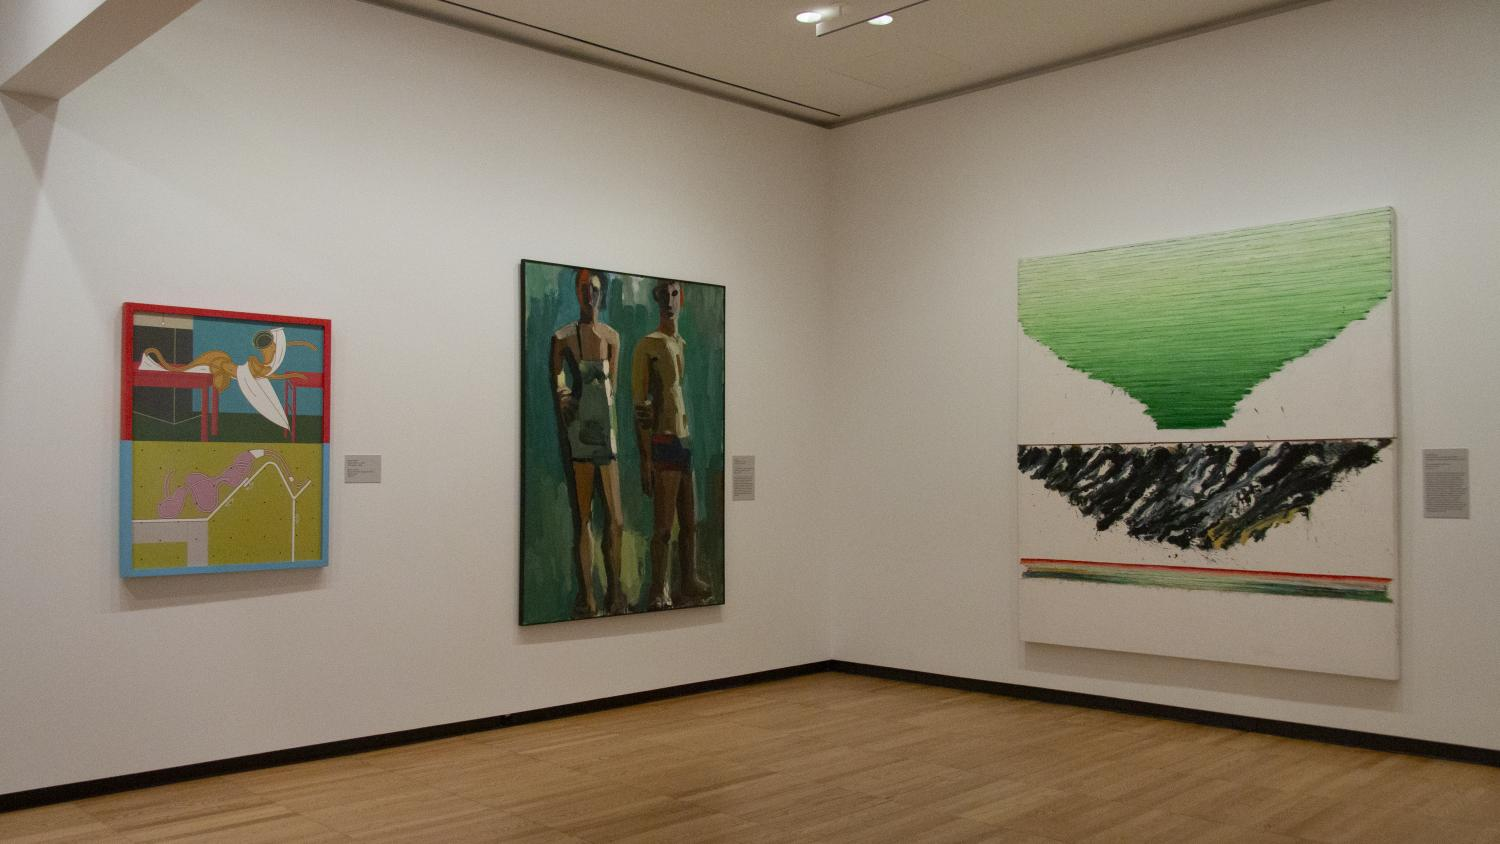 Three paintings in a gallery. At left is a brightly colored assembly of shapes, at center is a standing couple in summer gear, at right is an abstract work that resembles a green tornado. All are giant canvases, taller than a grown man.